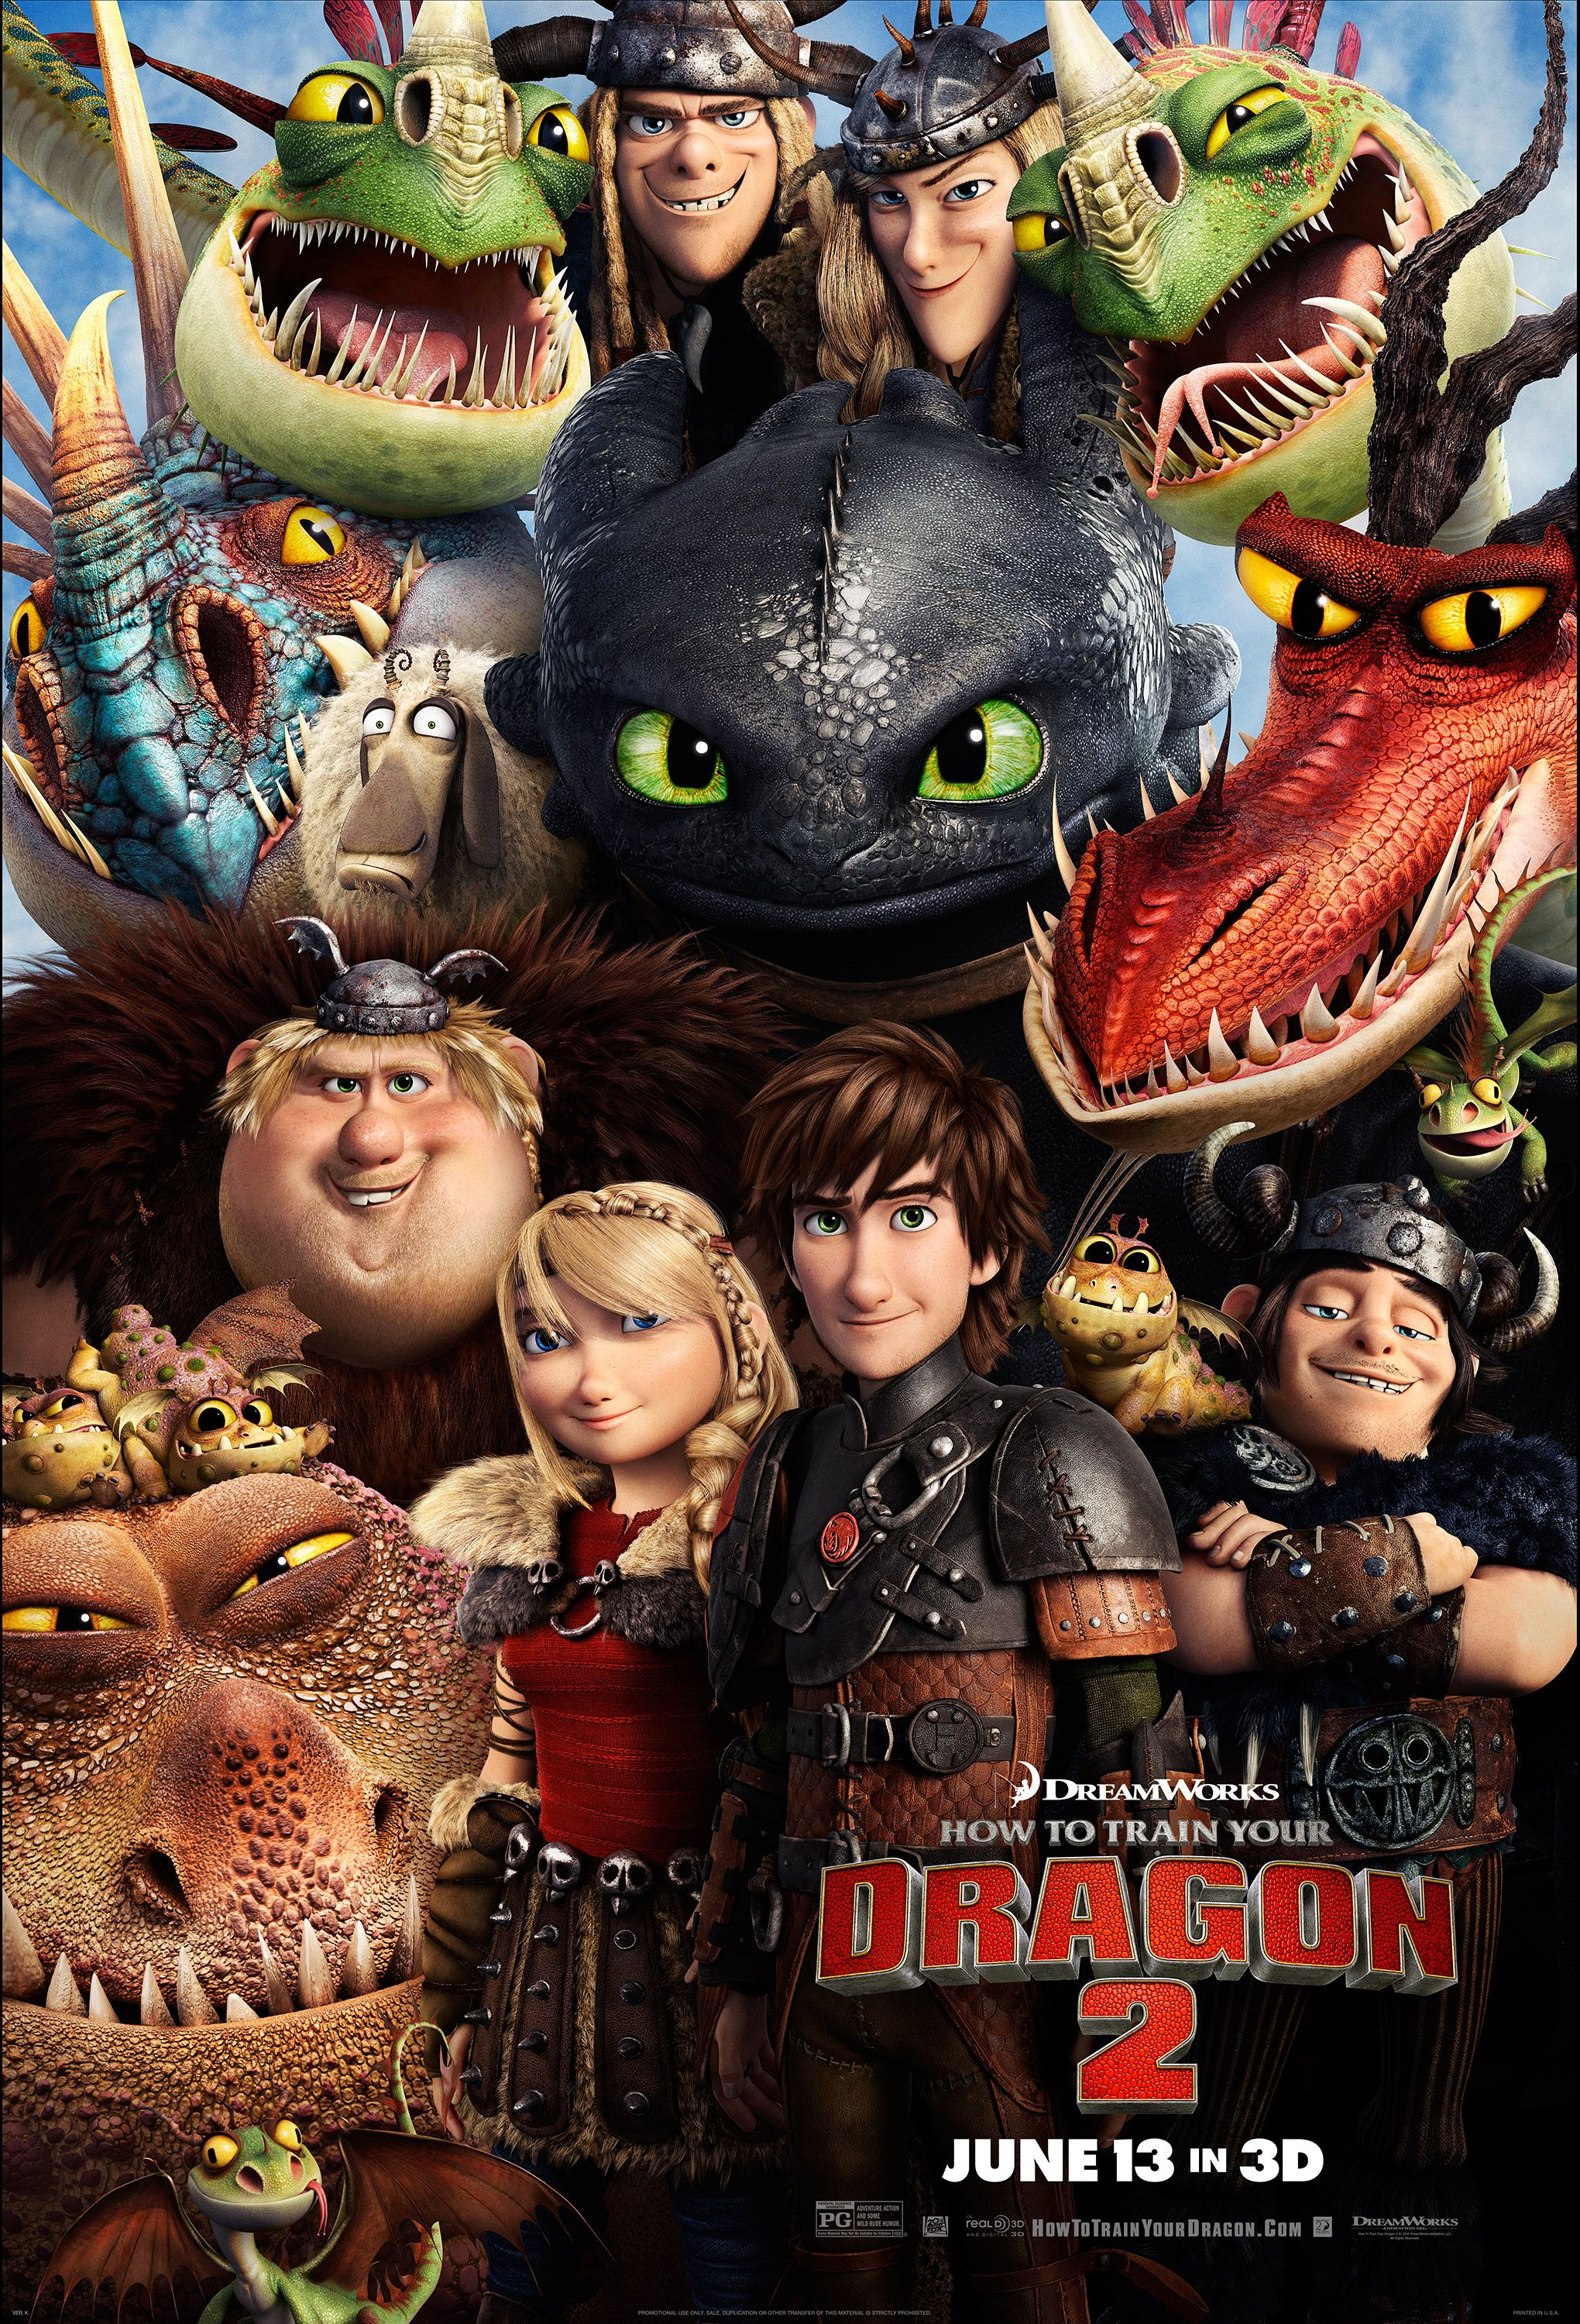 Watch 5 HOW TO TRAIN YOUR DRAGON 2 Movie Clips | Collider